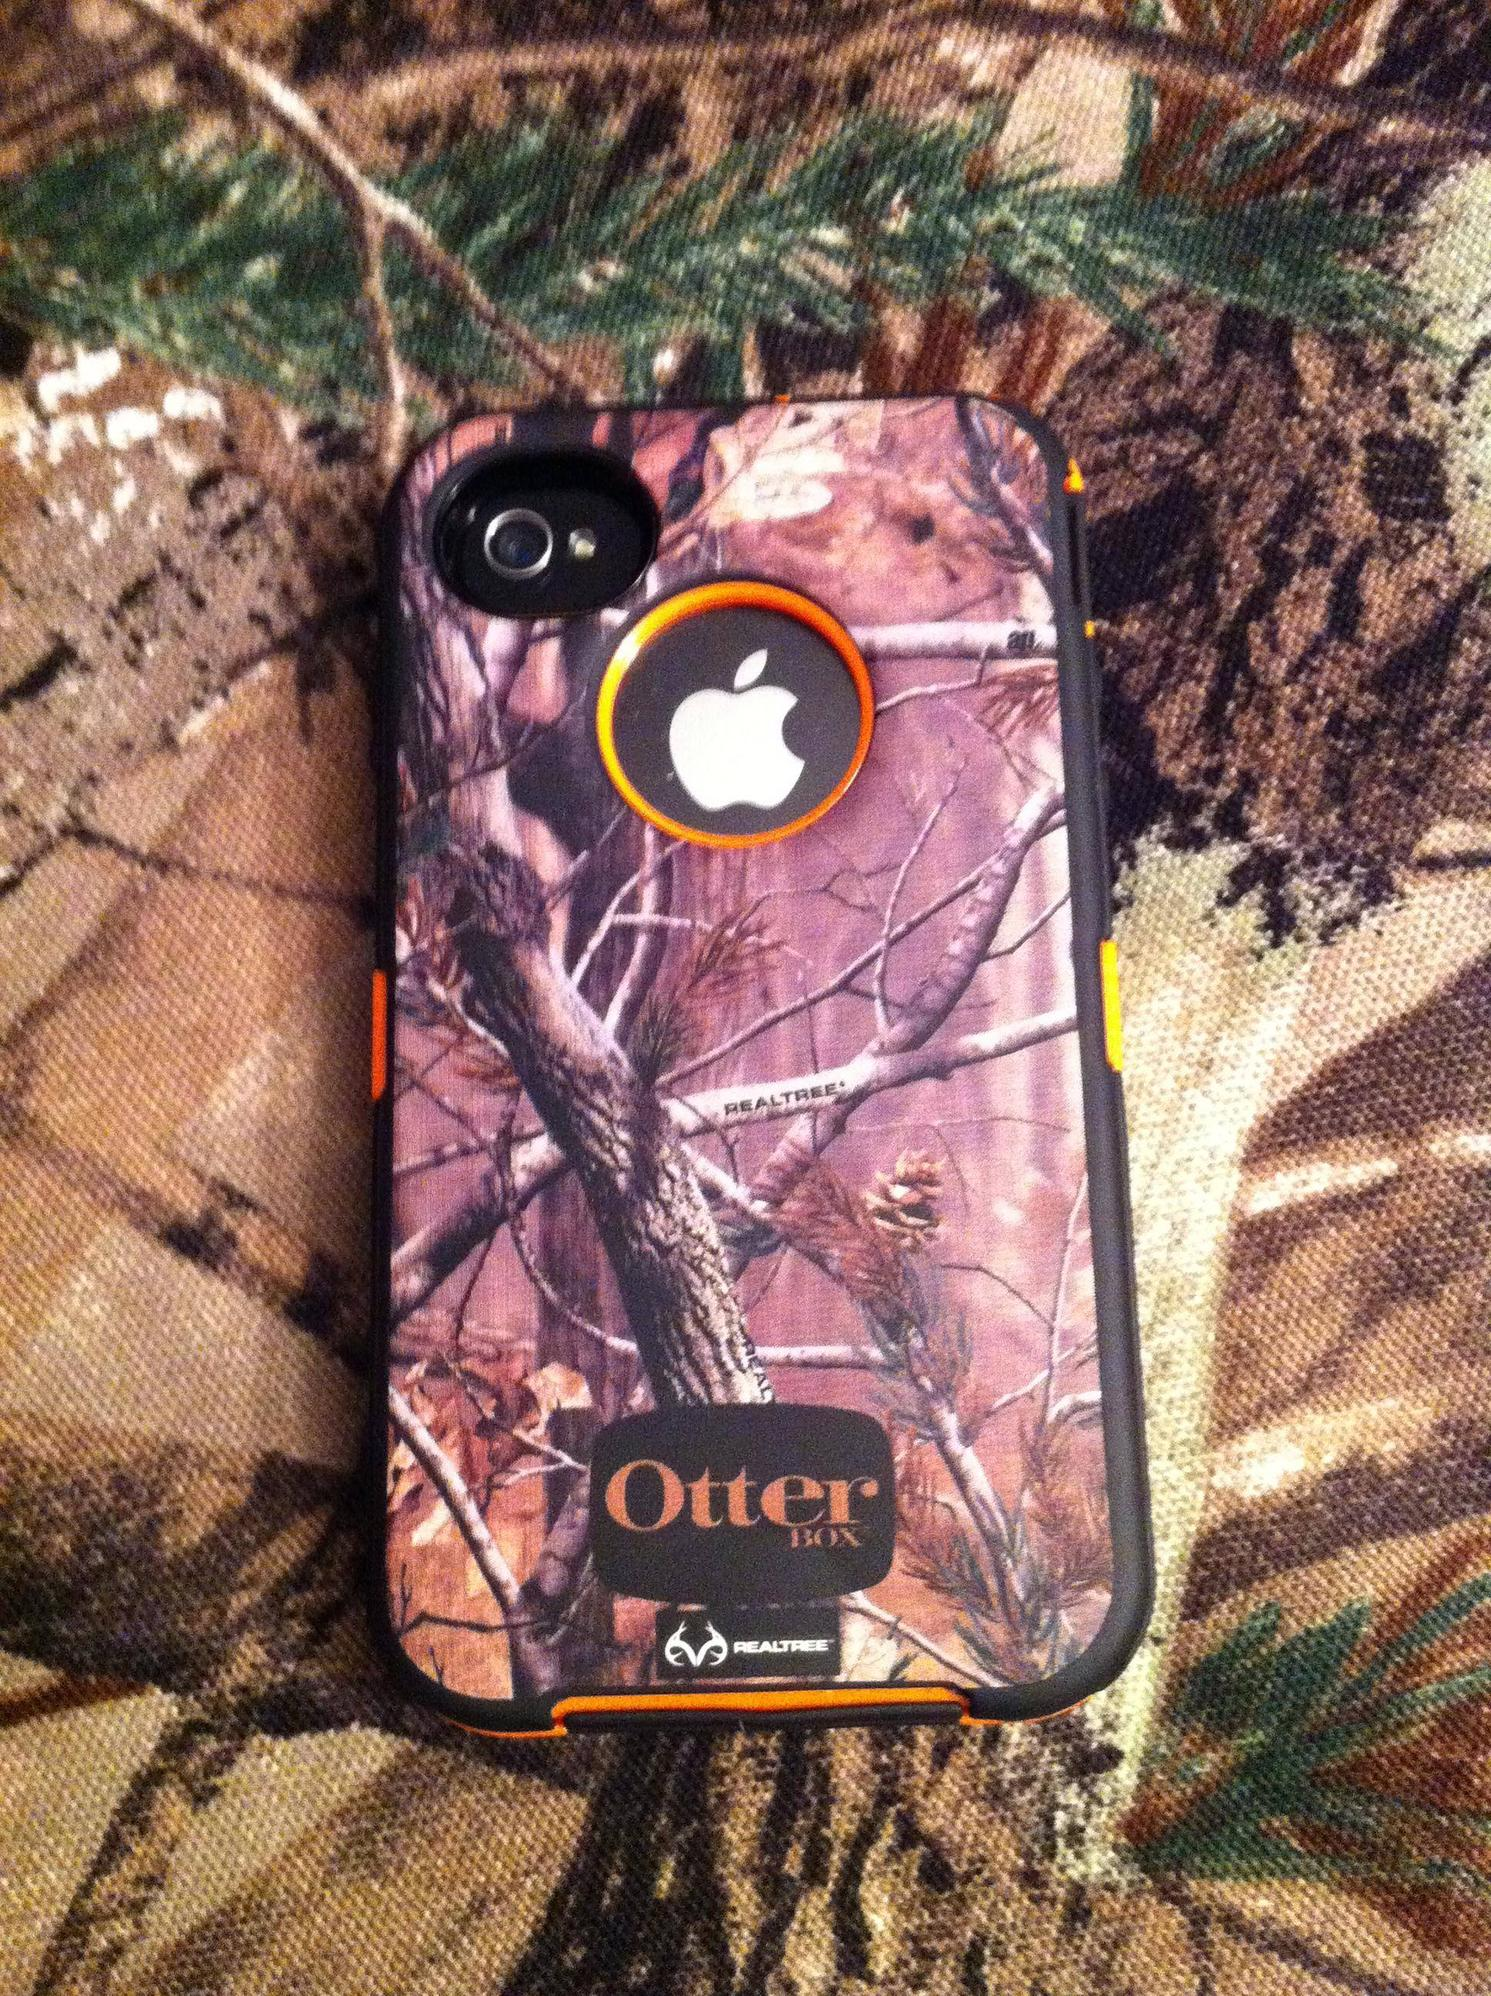 Realtree Camo Iphone 5 Wallpaper for Pinterest 1491x1996